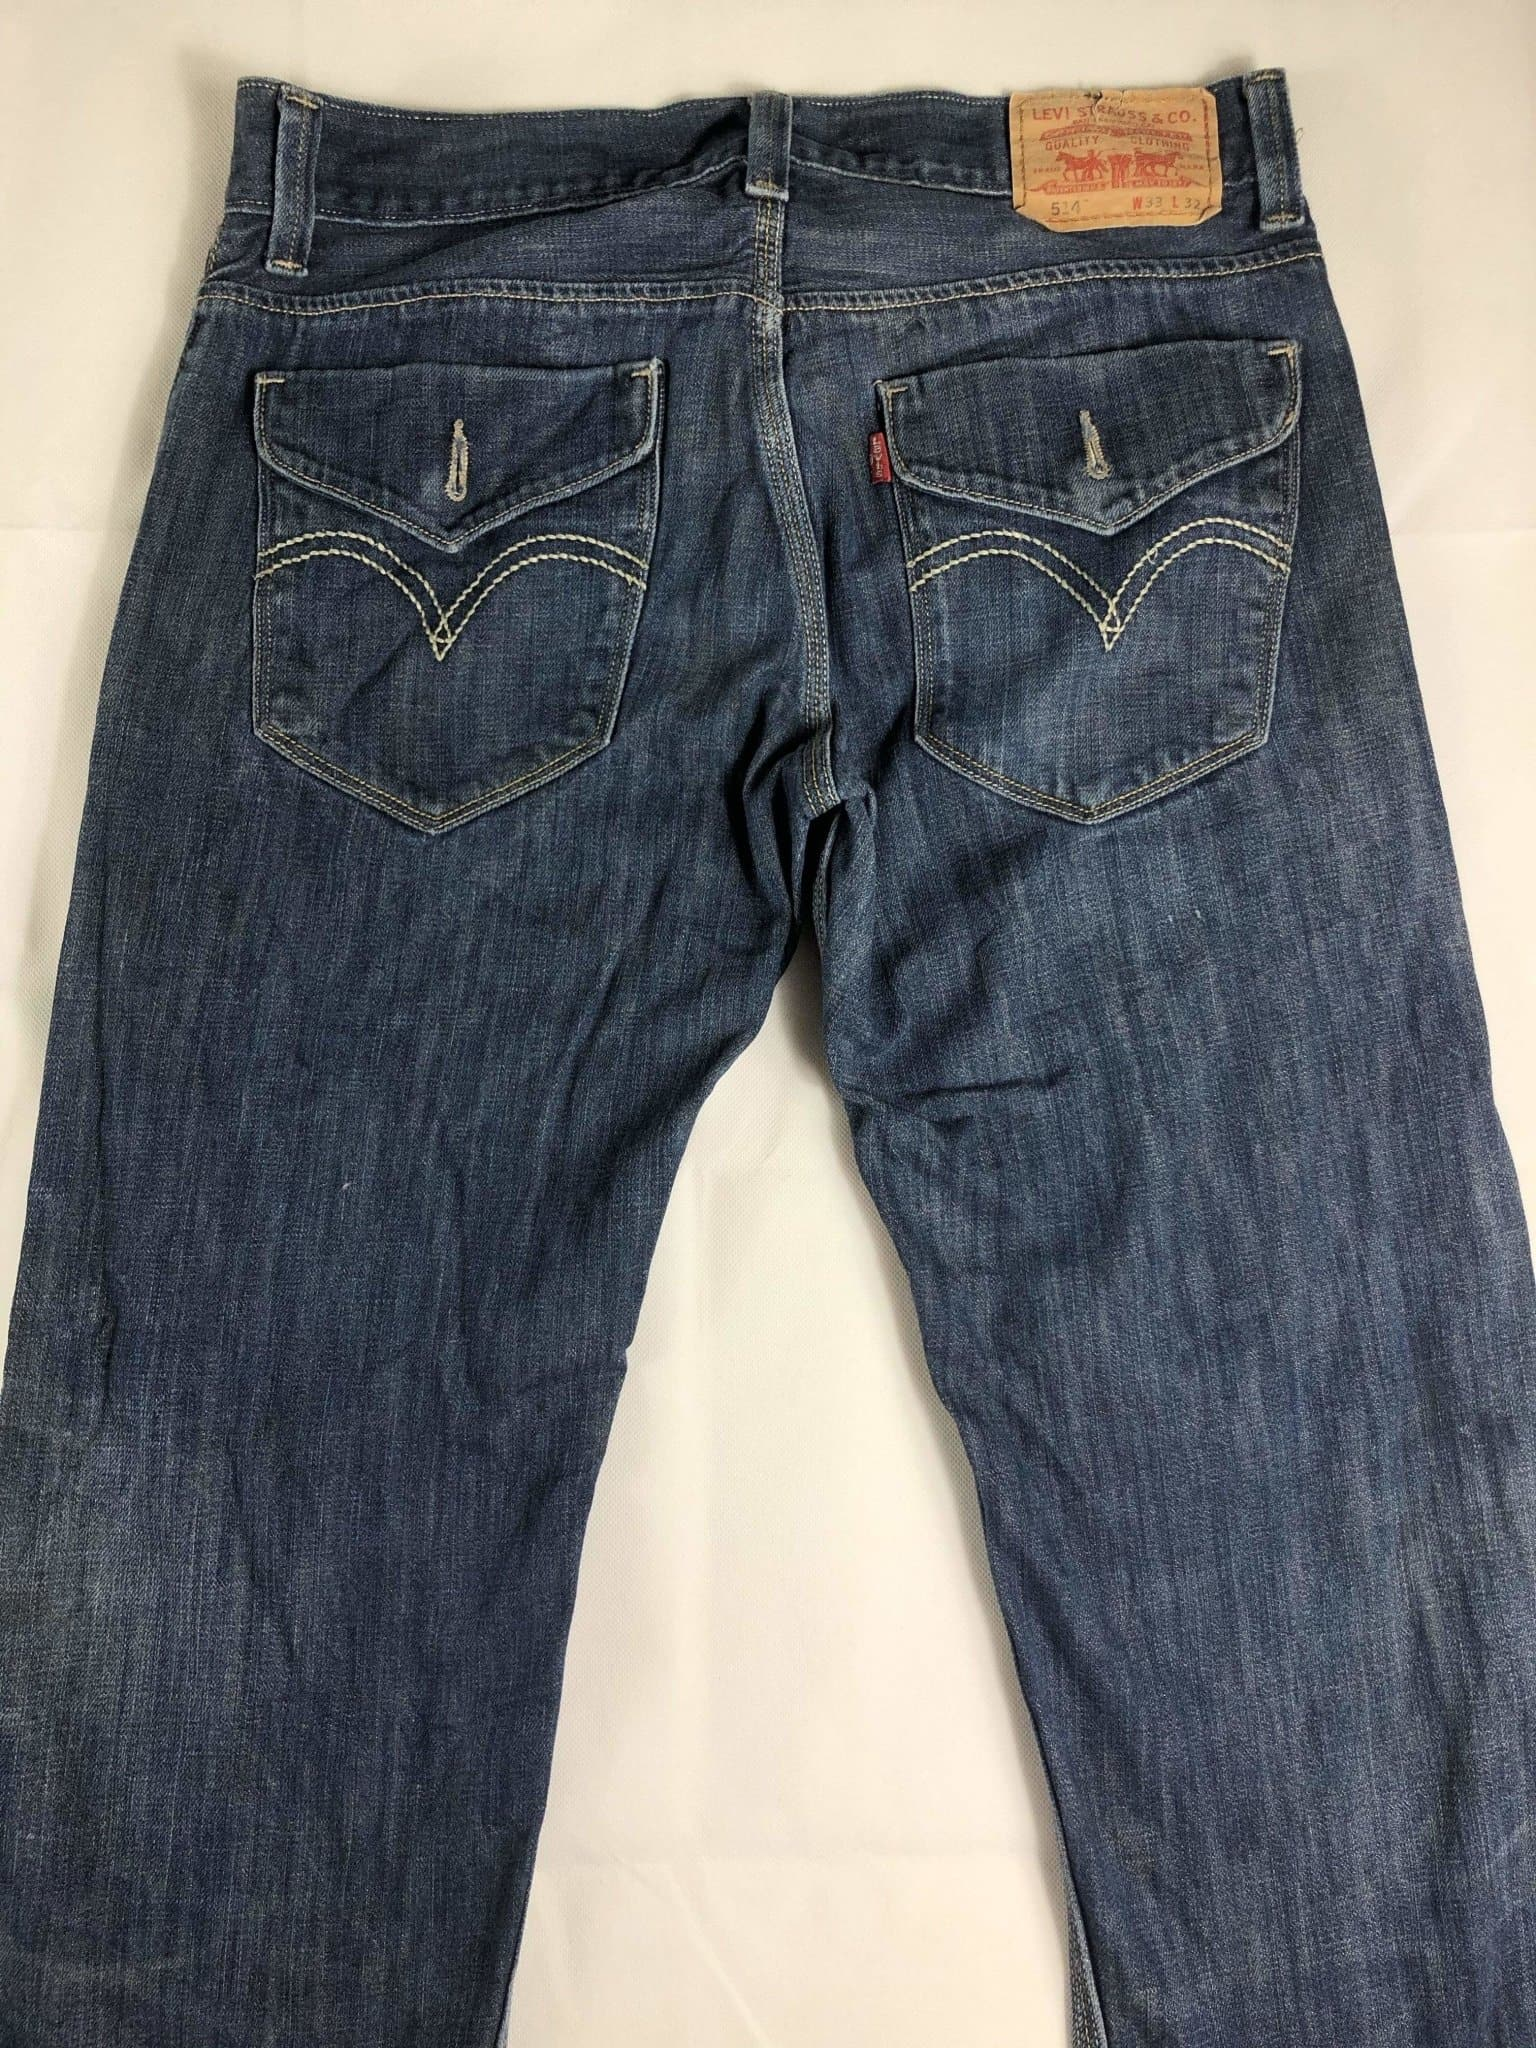 Vintage Levi's 514 Jeans W33 L32 (Z21) - Discounted Deals UK